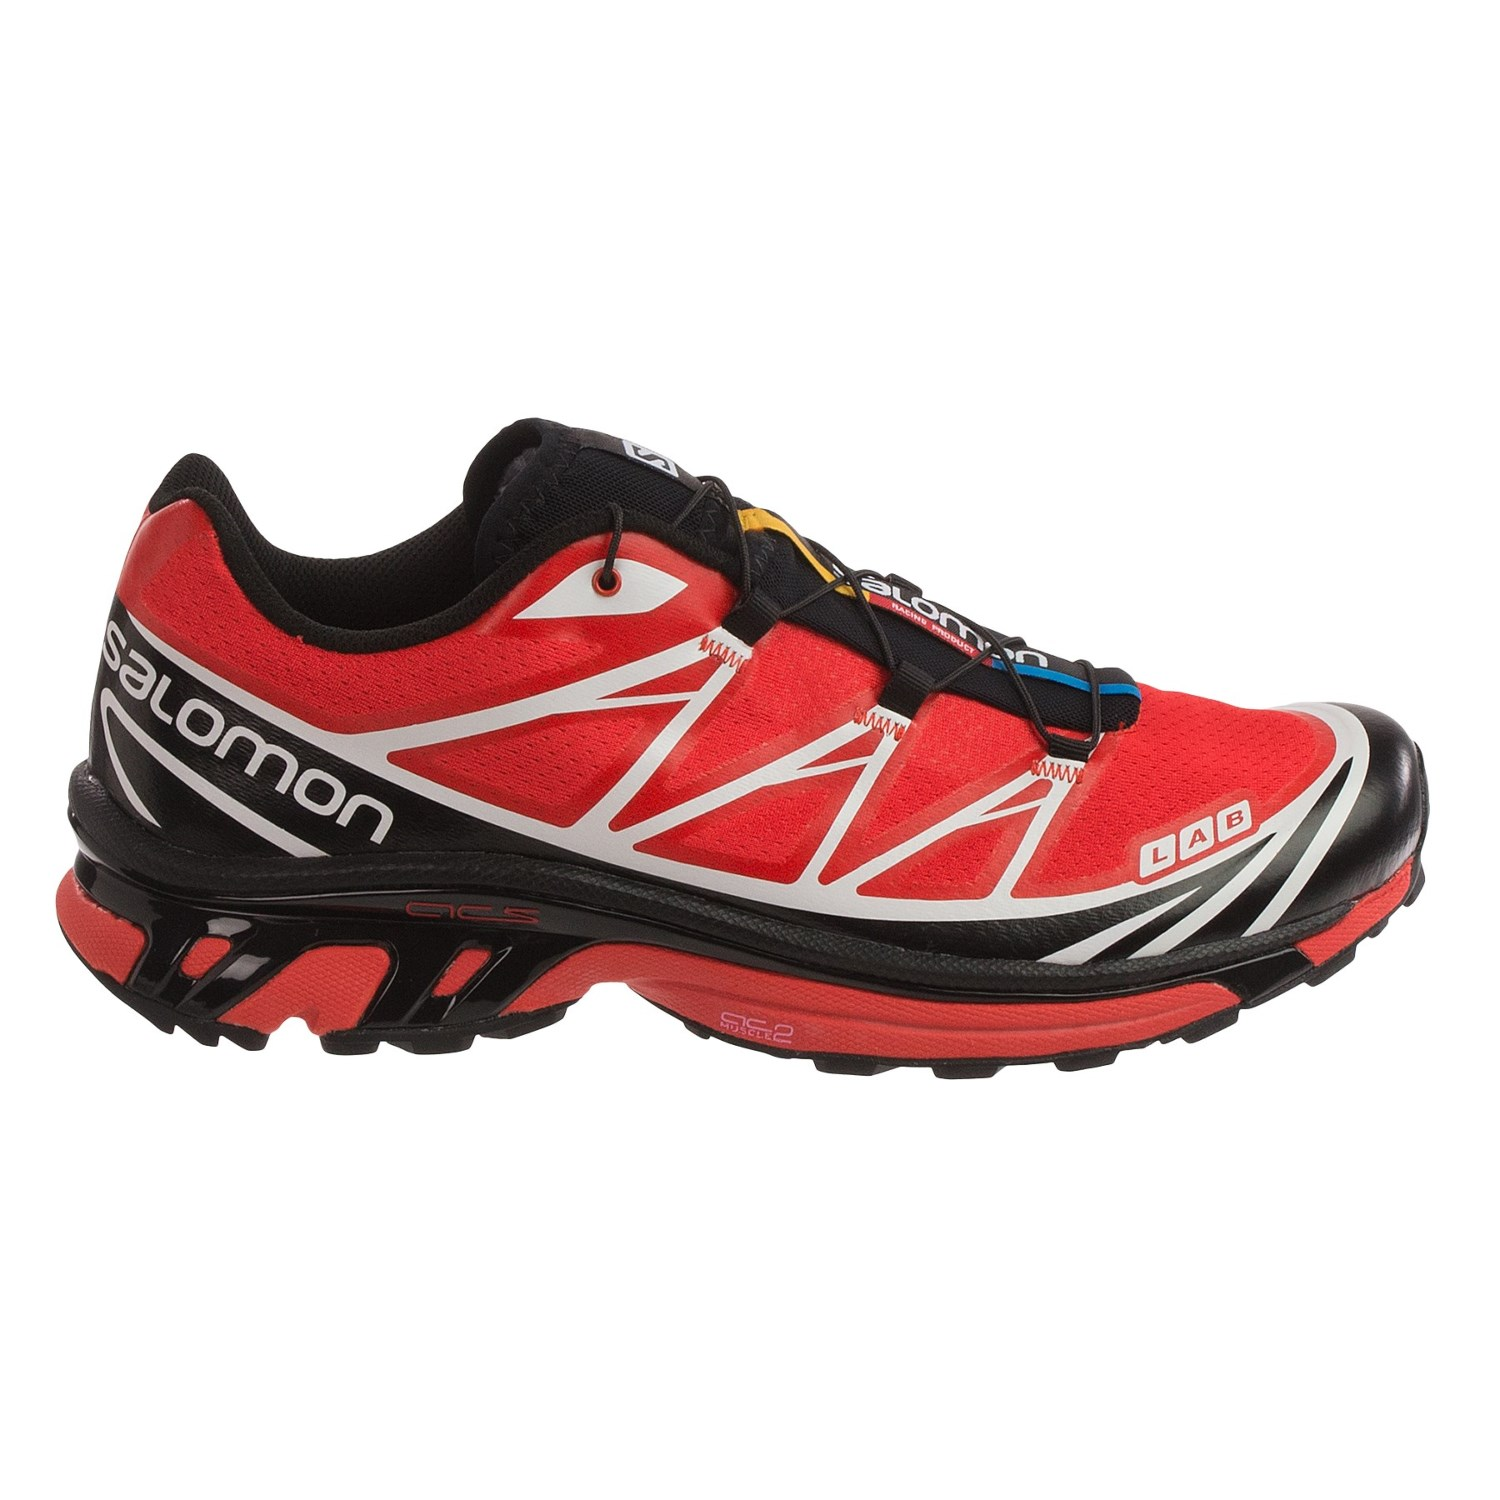 Salomon S Lab Shoes Review